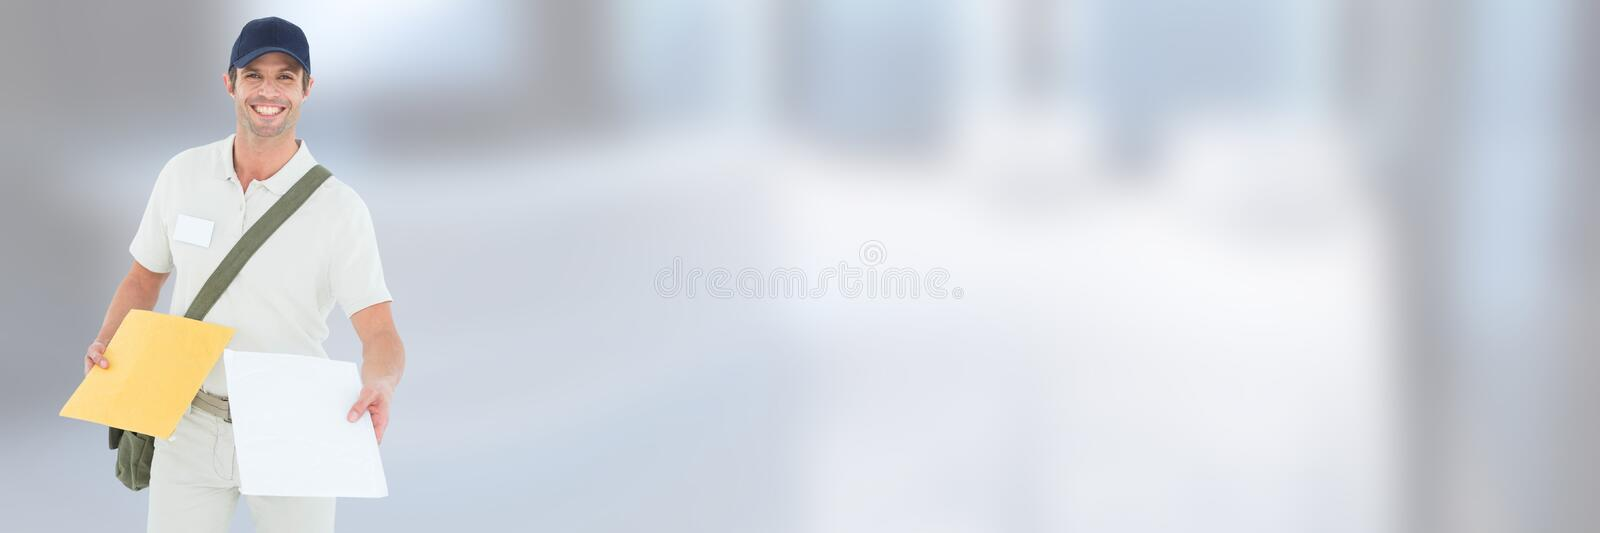 Delivery Courier holding form in front of blurred background stock photography